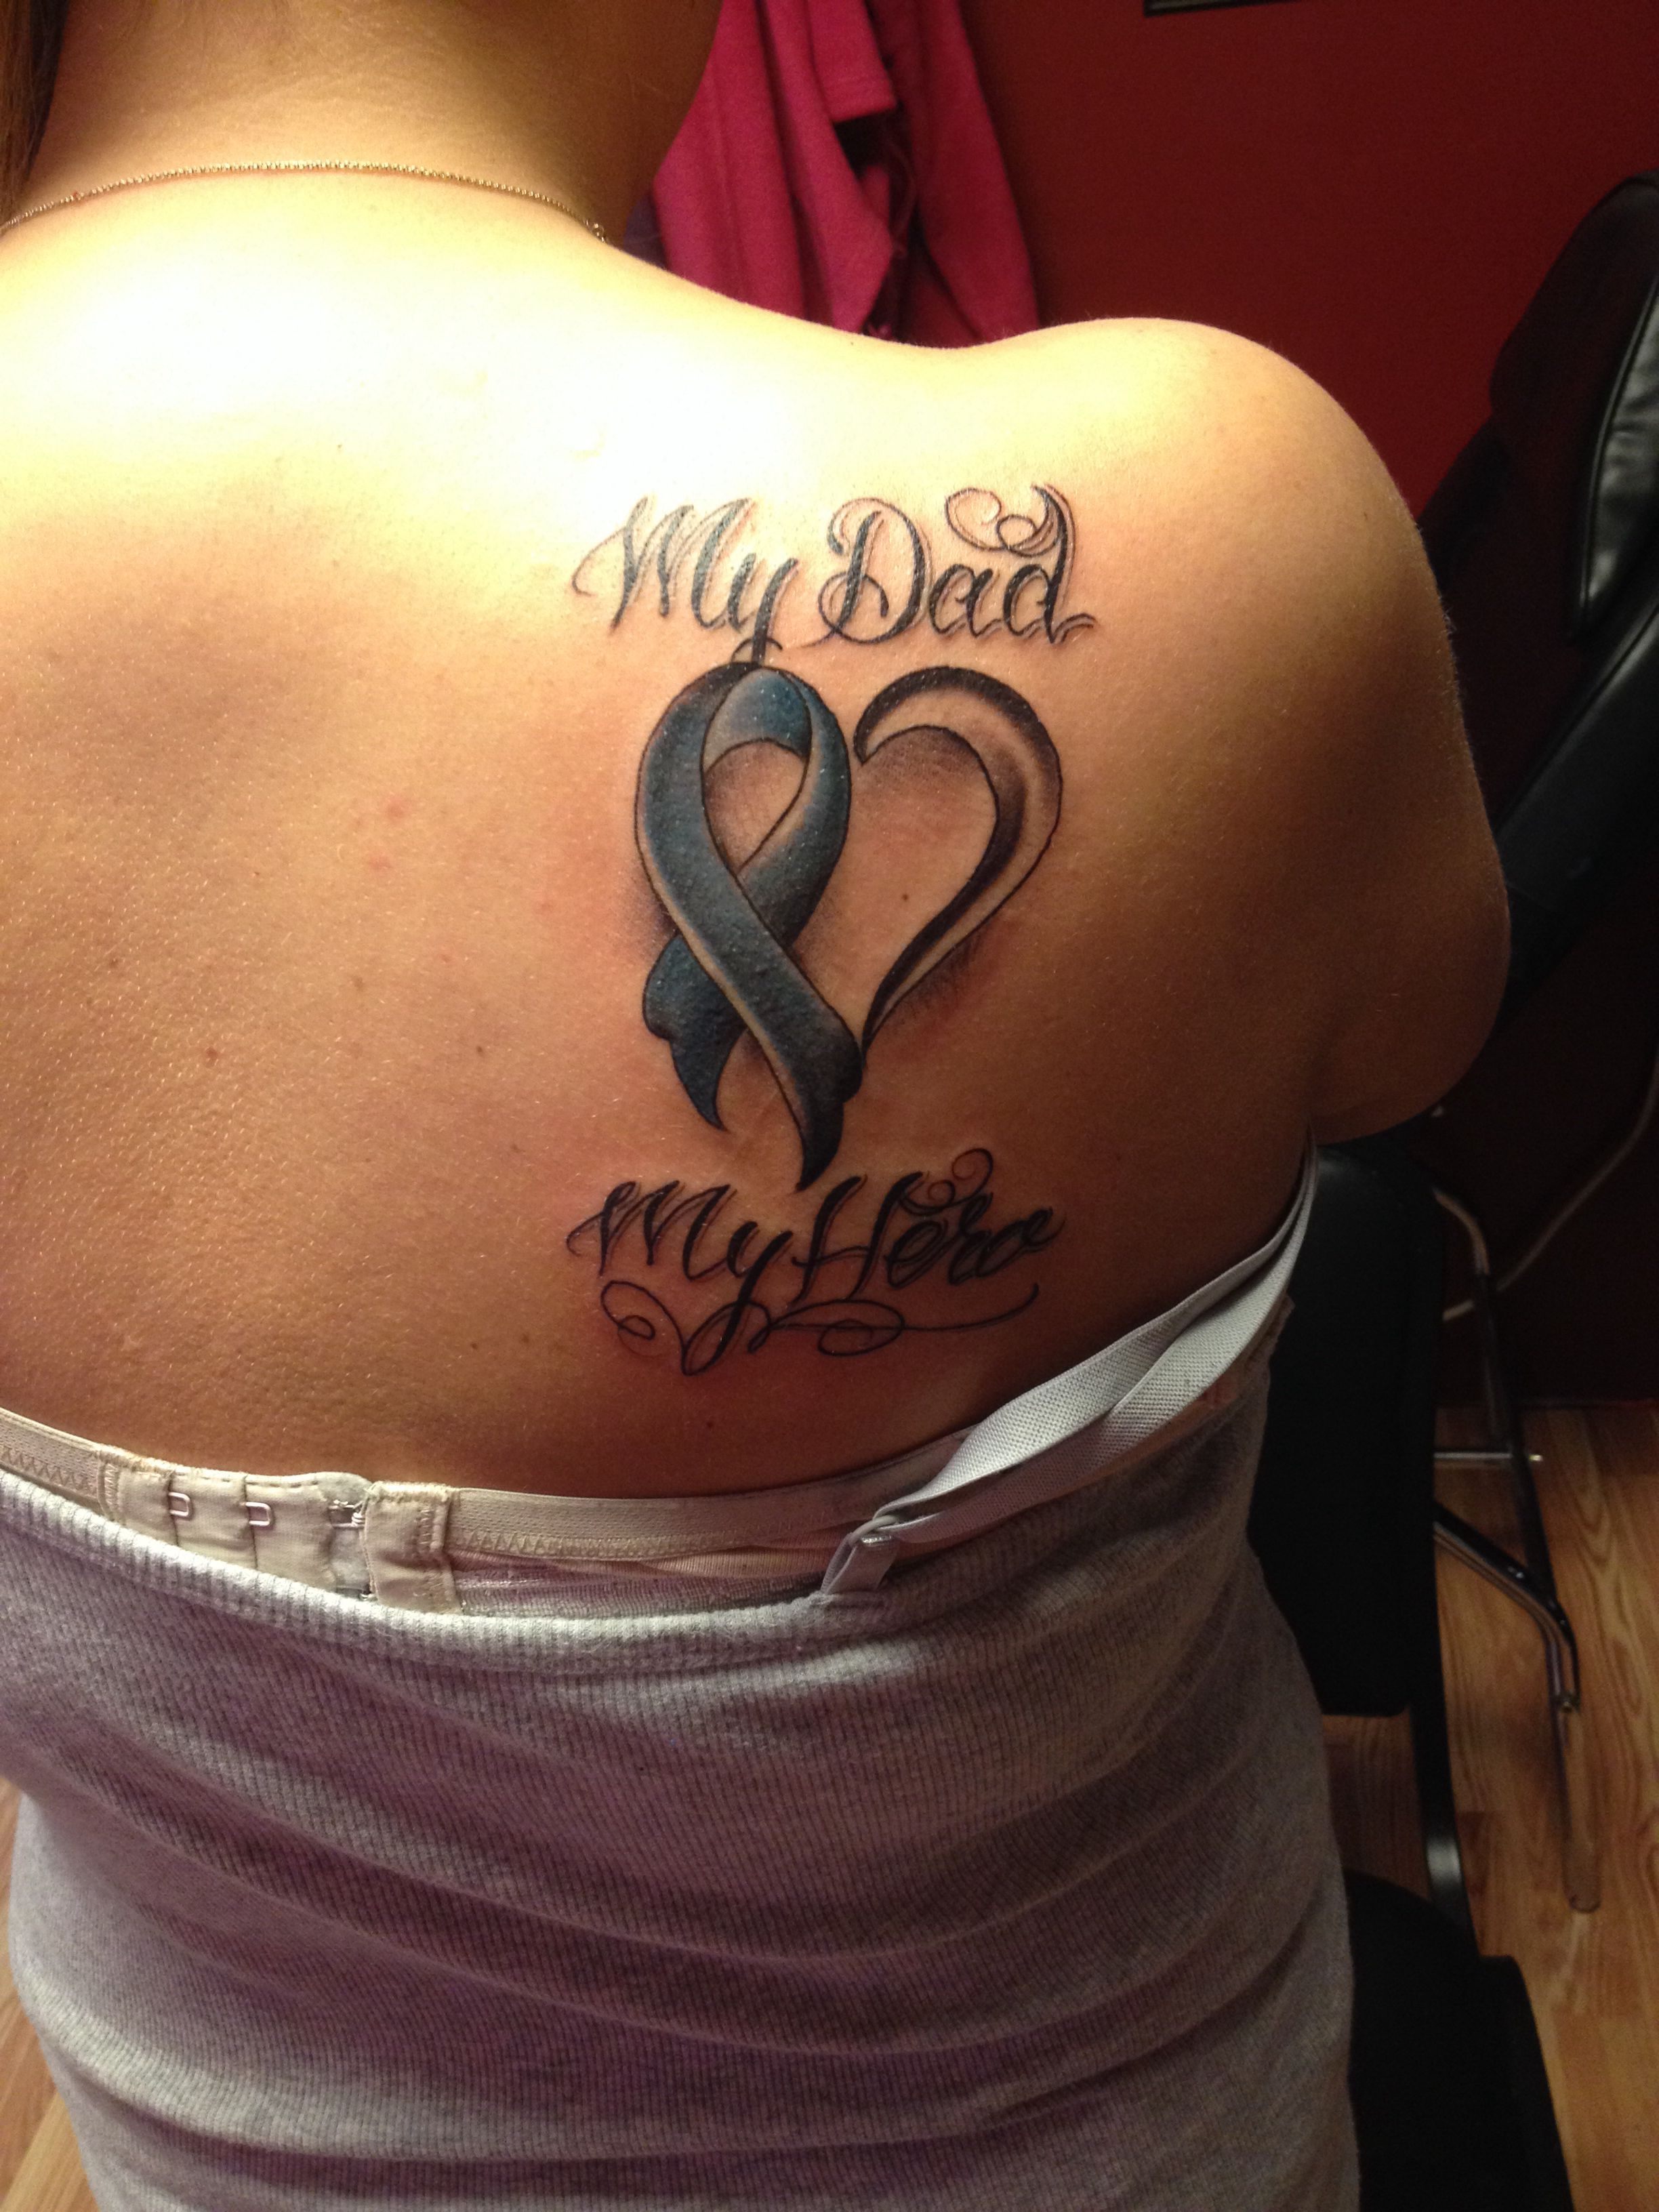 My First Tattoo This Is For My Dad Who Is Battling Prostate Cancer